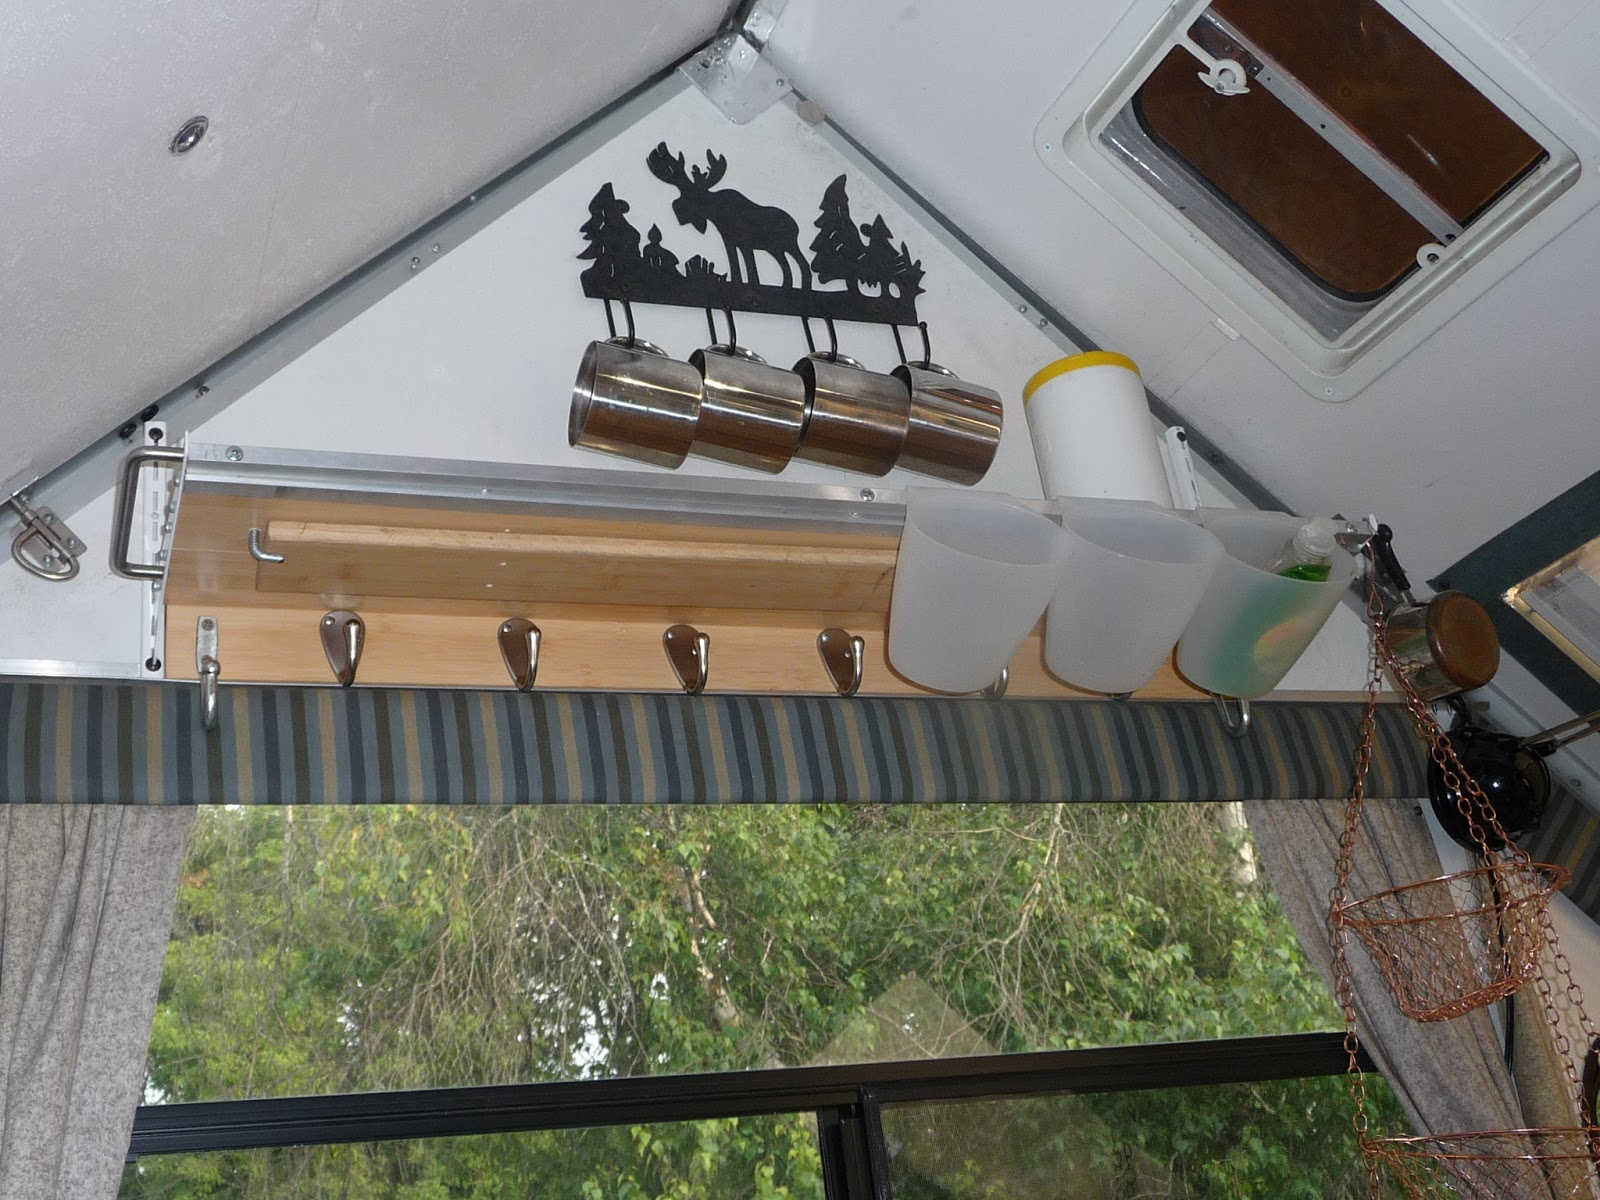 Awnings, Ideas | Dave (TheOleGuy) and Nancy's Aliner